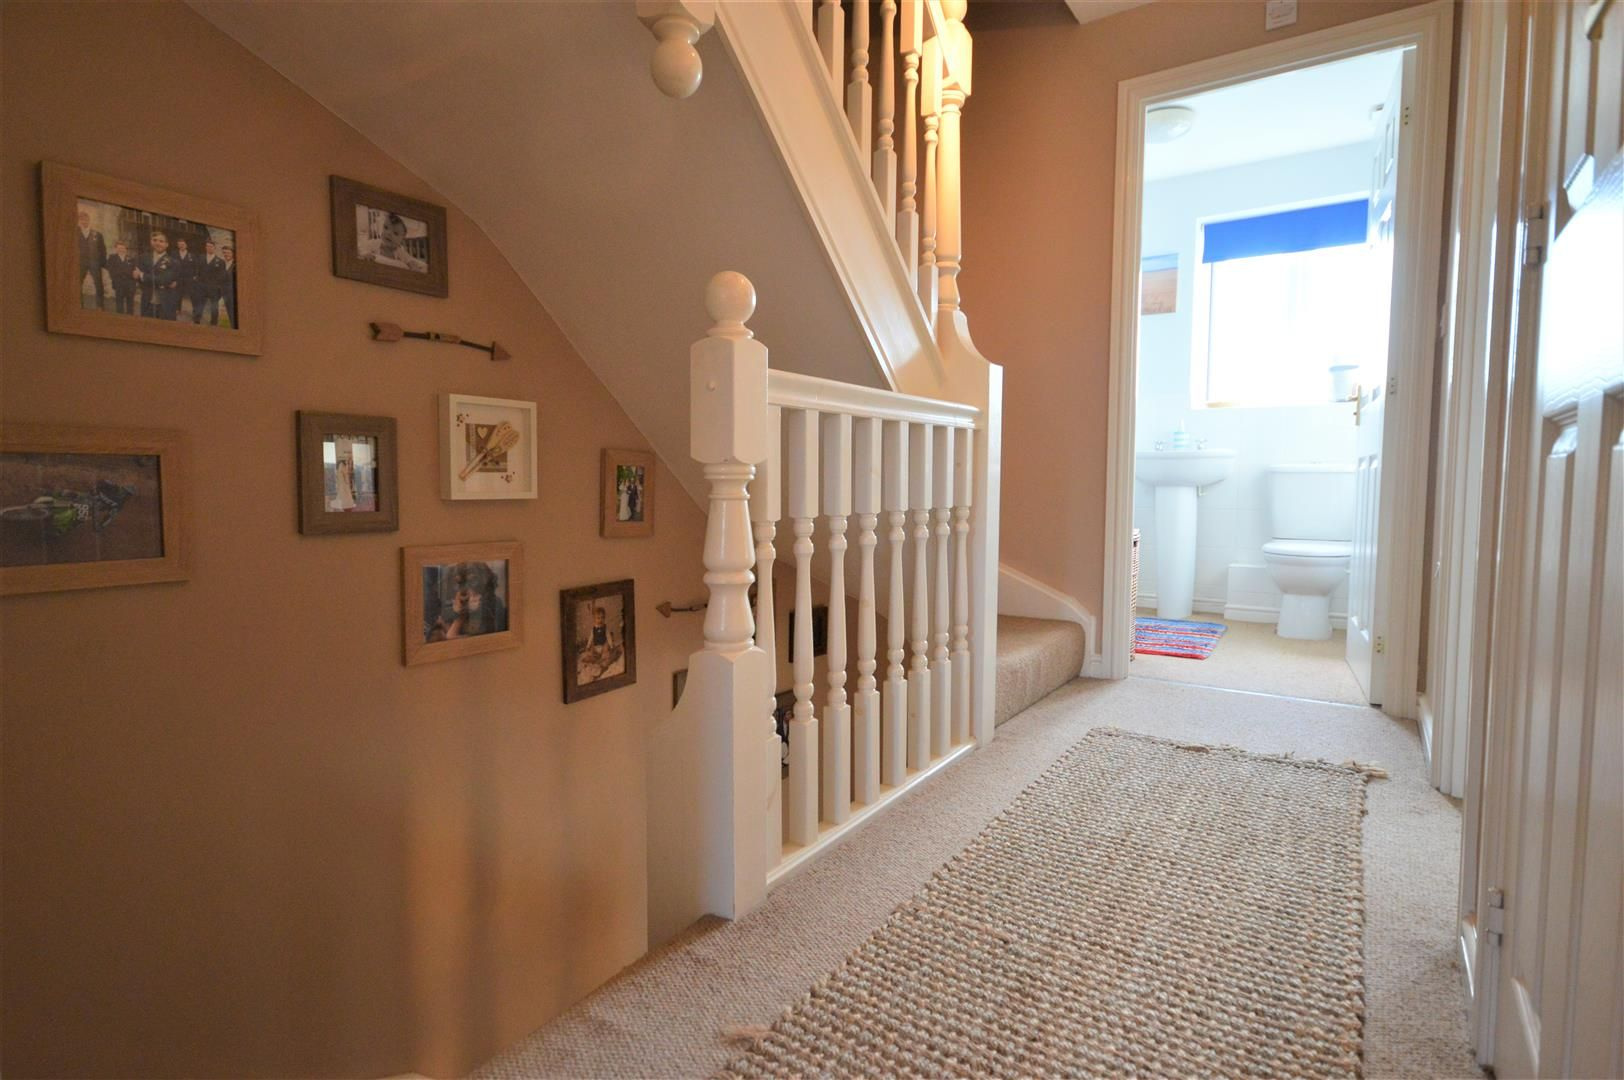 4 bed semi-detached for sale in Leominster 14